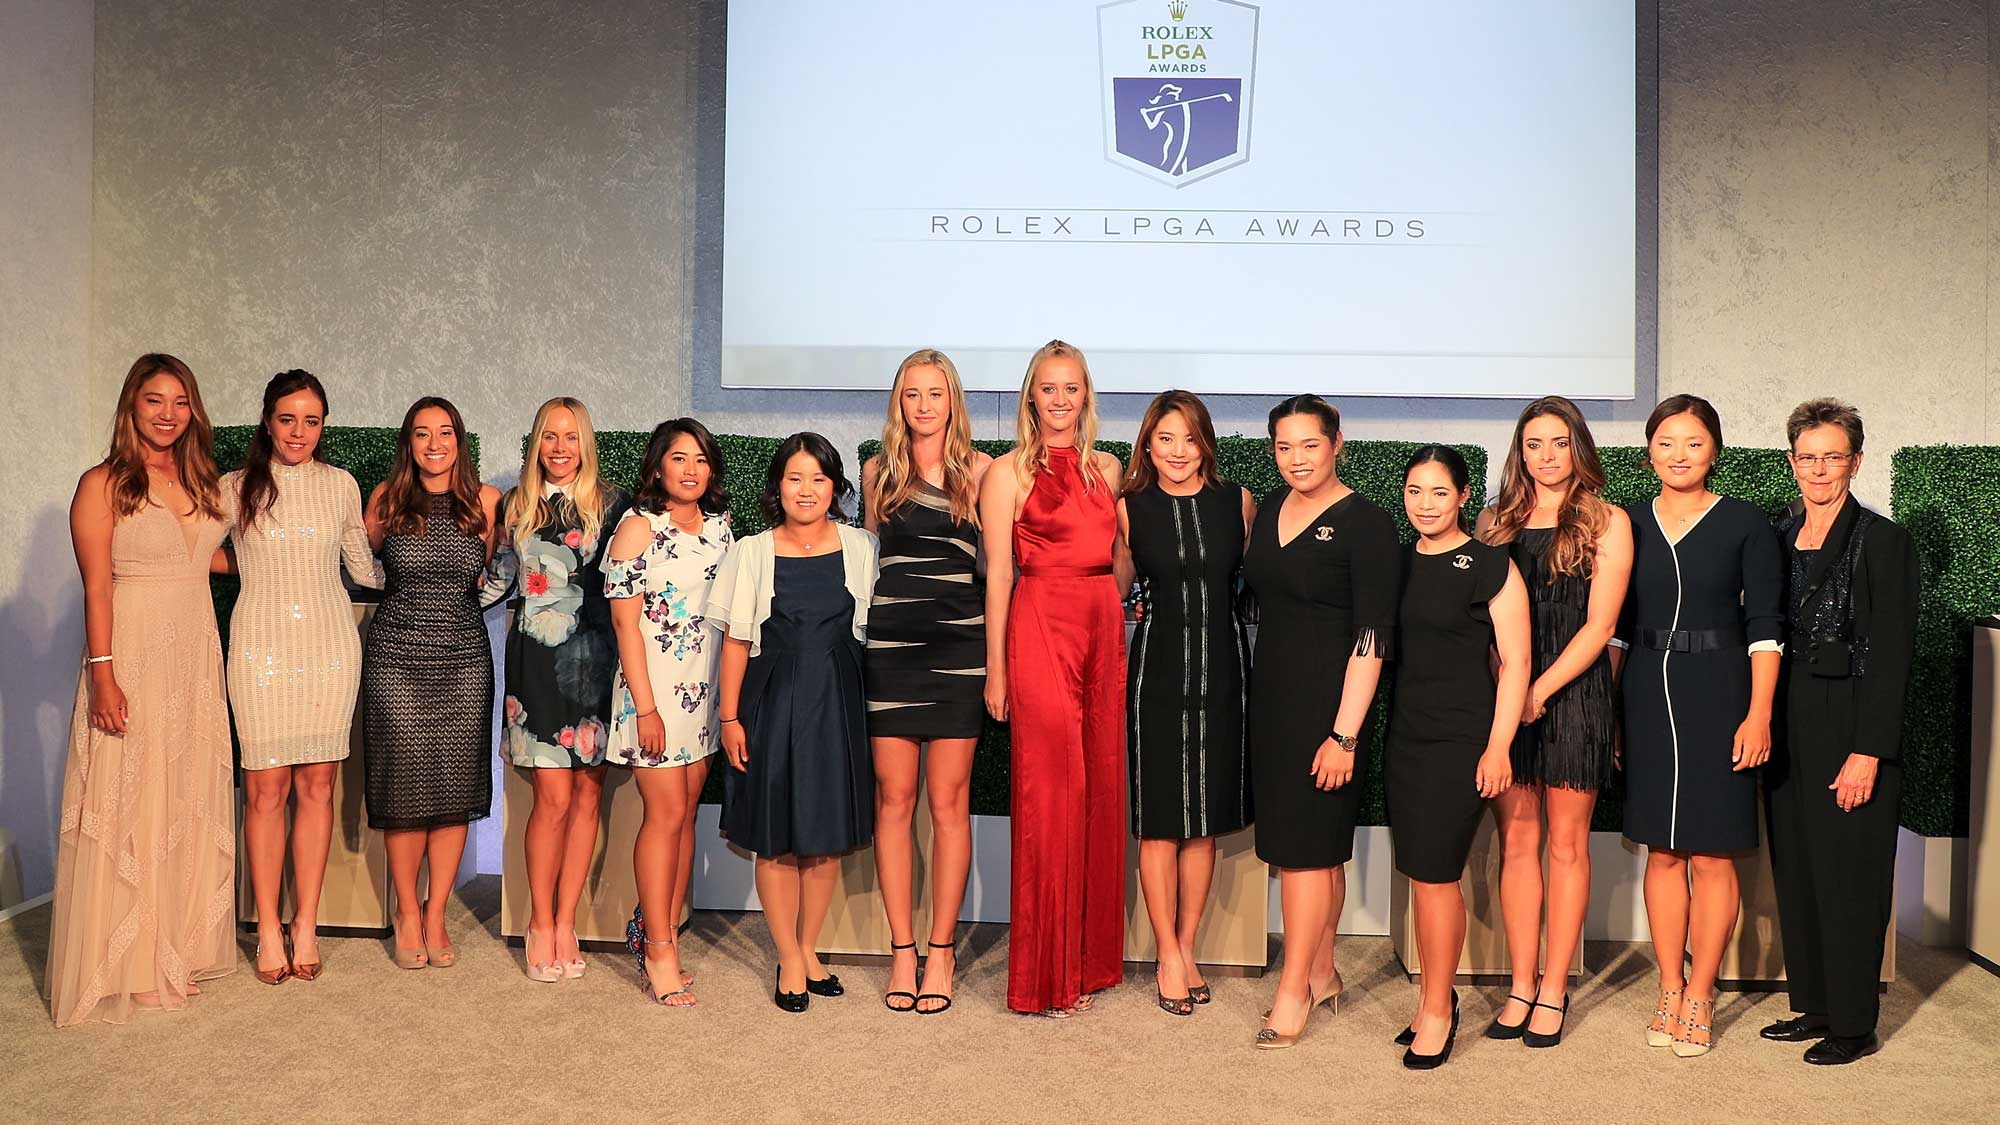 The Rolex Award winners pose for a group photo during the LPGA Rolex Players Awards at the Ritz-Carlton Golf Resort